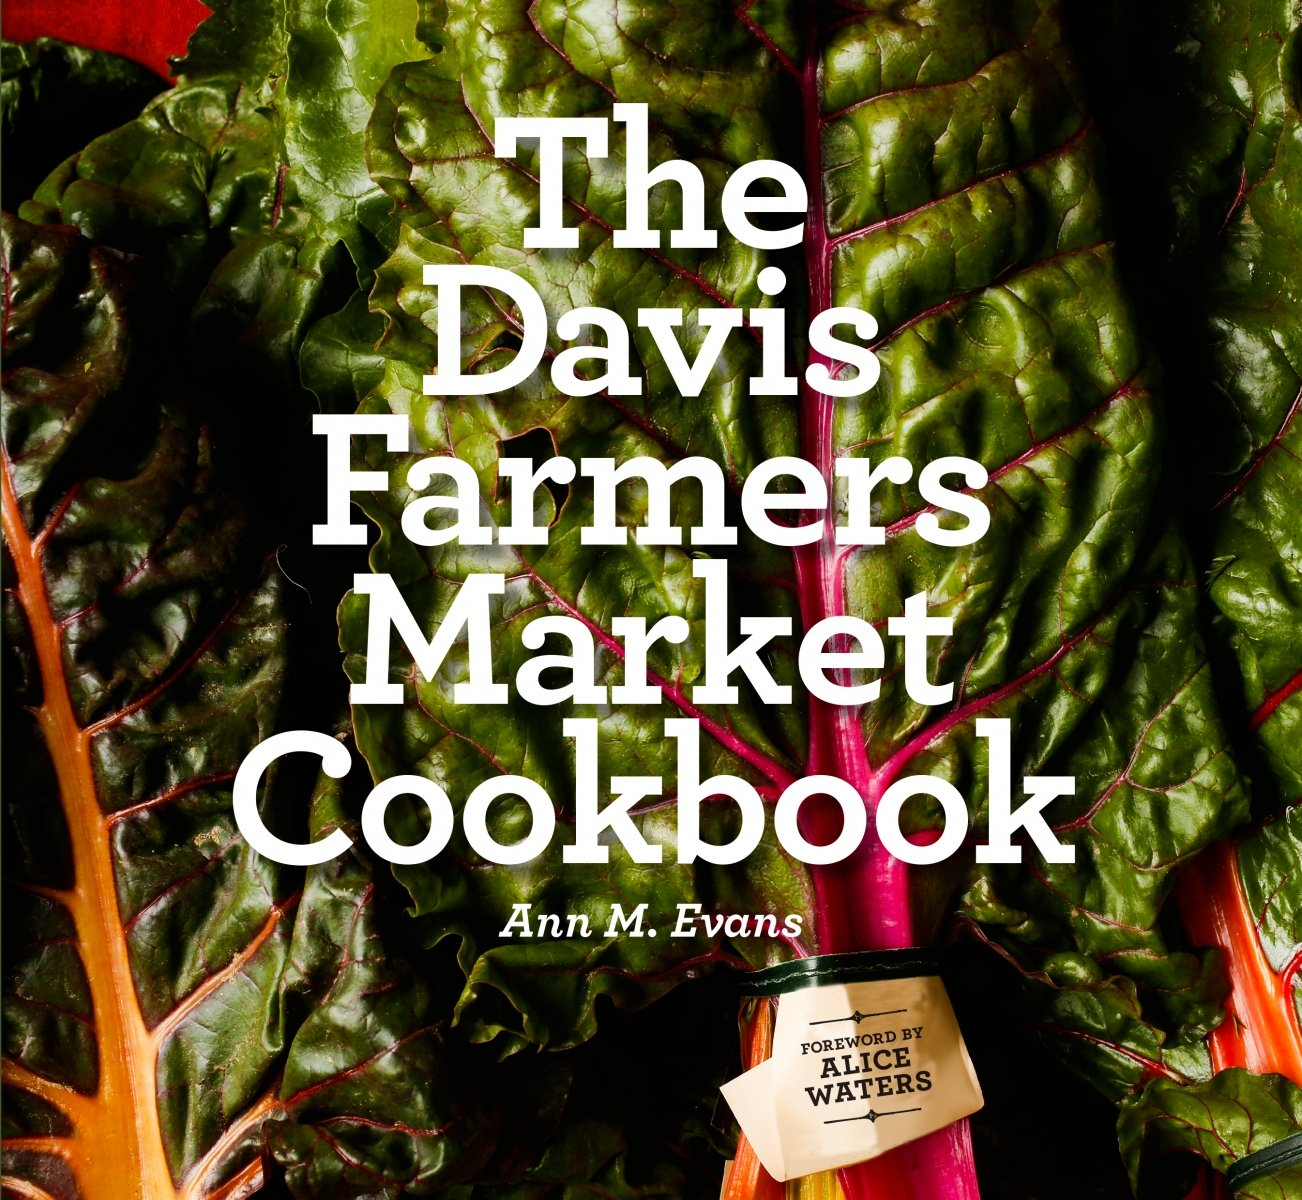 """The Davis Farmers Market Cookbook"" features a foreword by chef Alice Waters of Berkeley's Chez Panisse (Book cover courtesy of Ann M. Evans)"